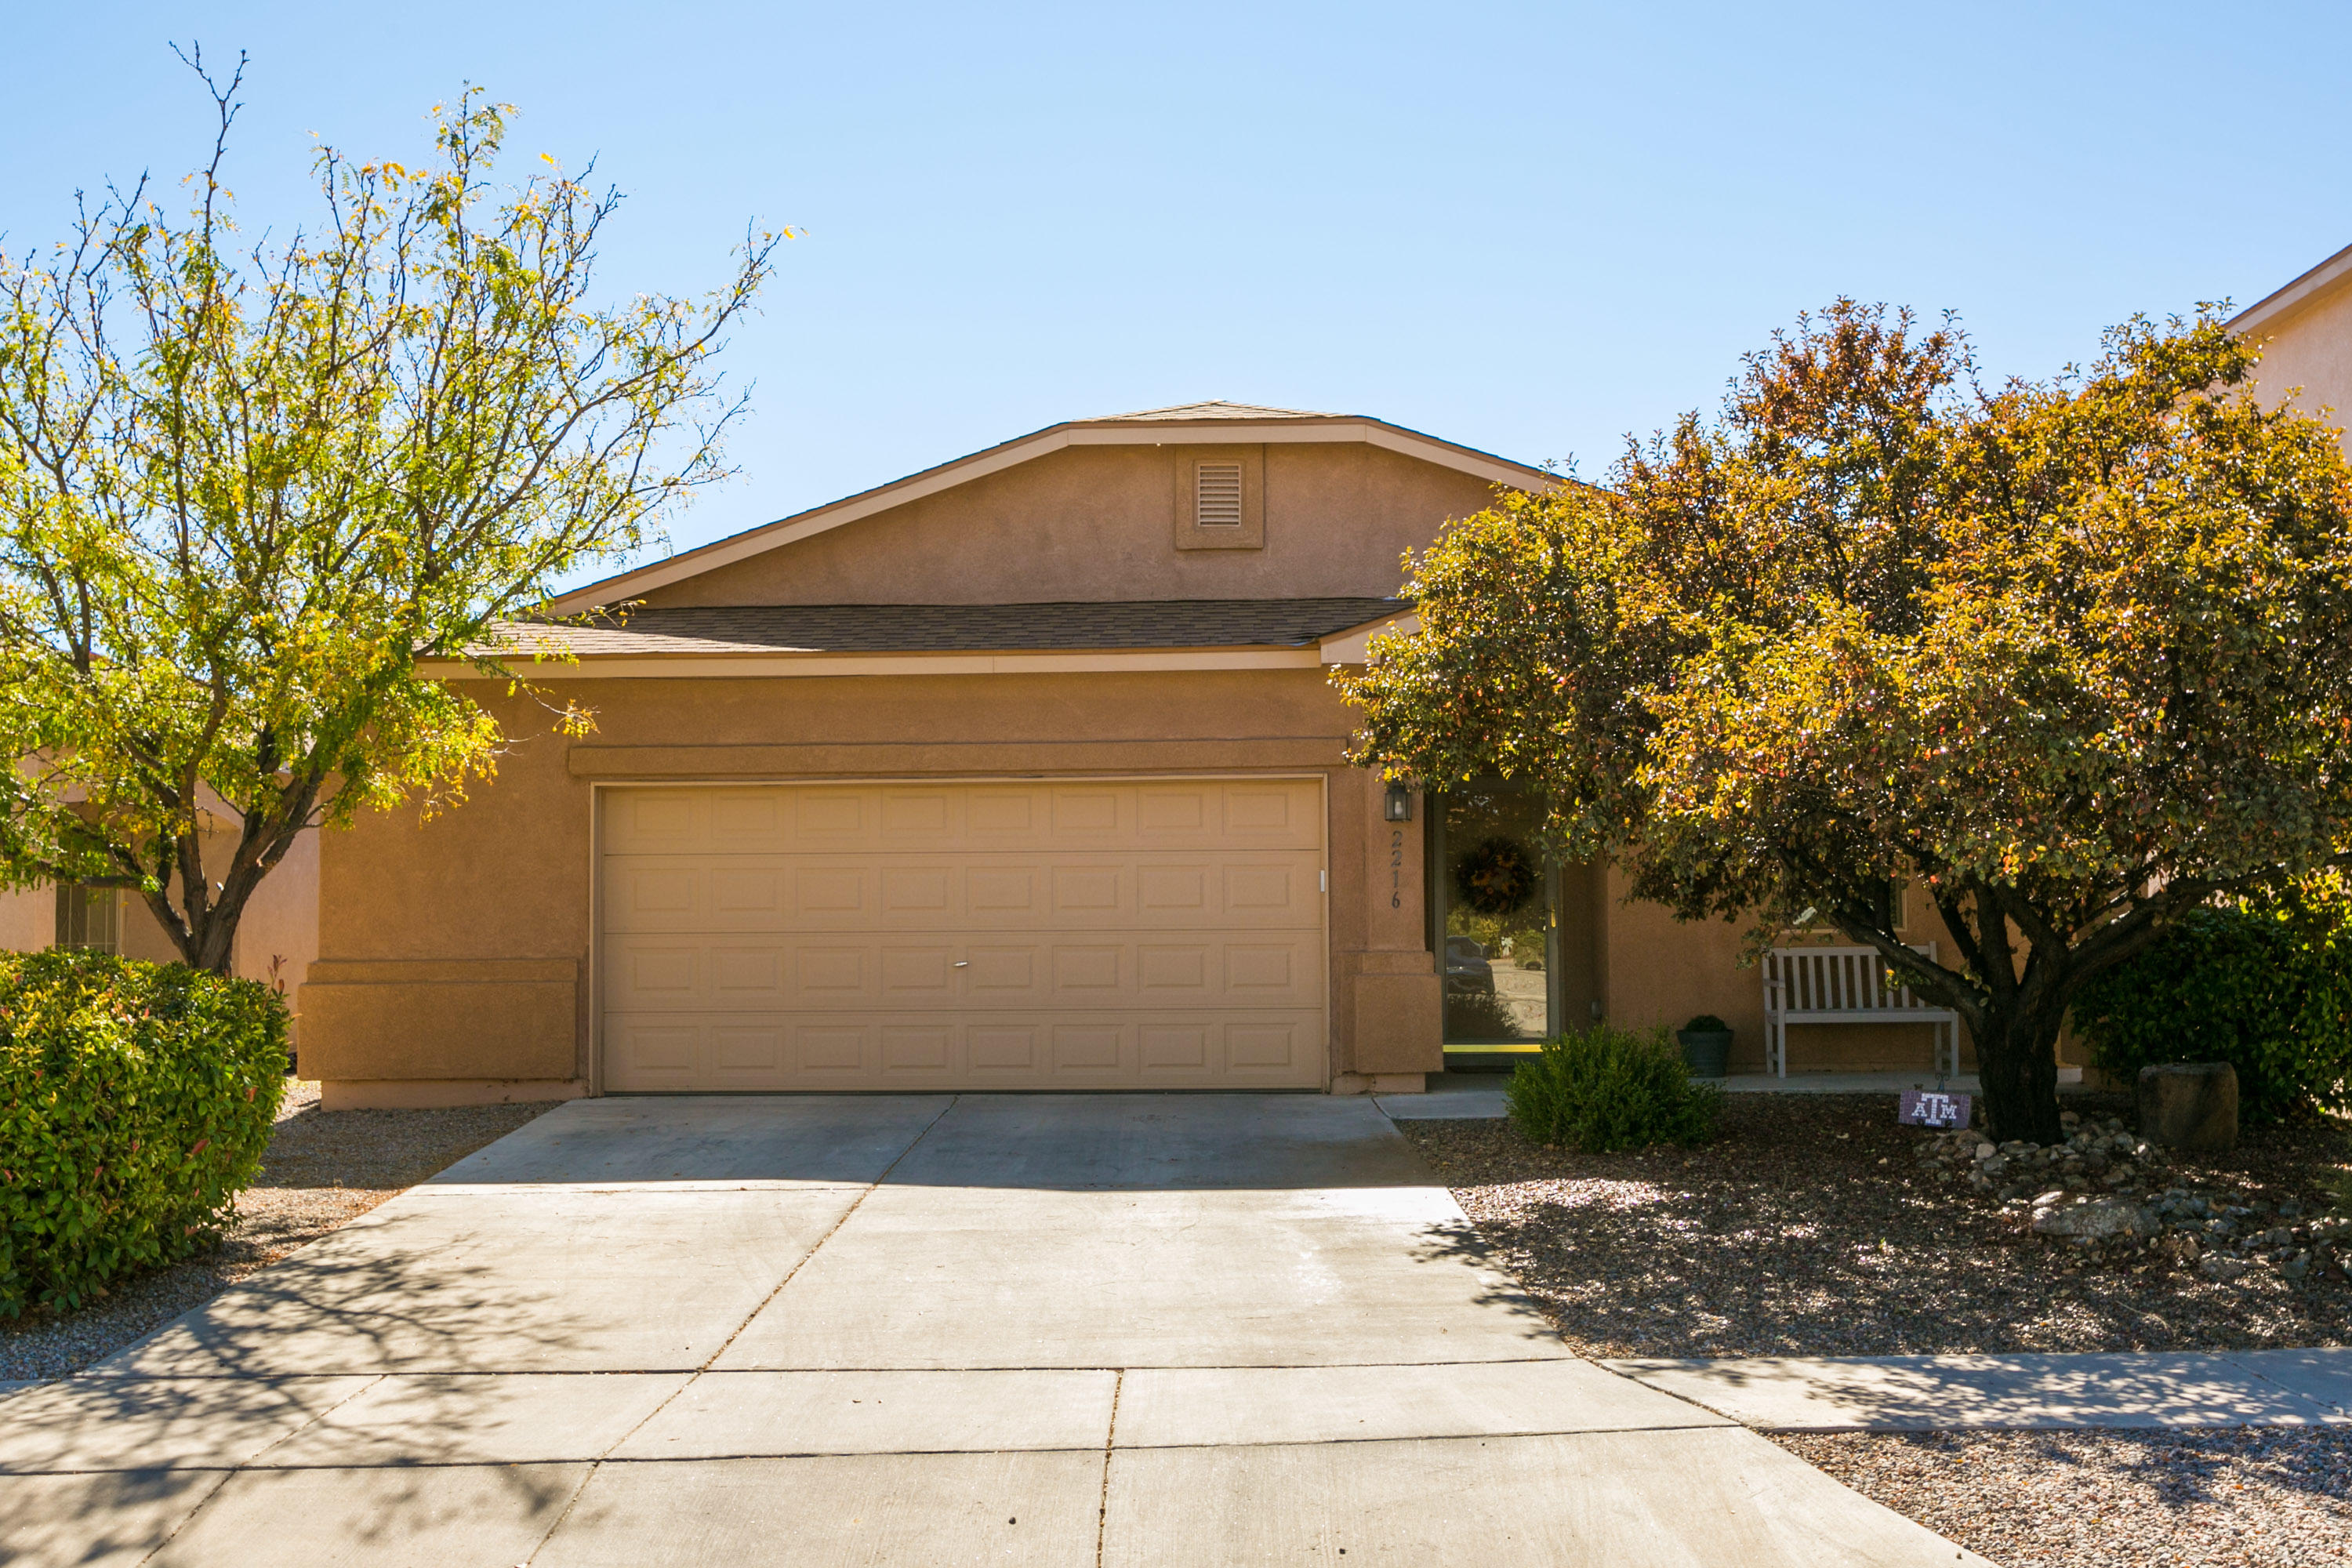 Welcome to this delightful single story, 4 bedroom home in Cabezon!  This home has a wonderful open floorplan with the kitchen open to the living room and dining room and new wood looking laminate flooring.   The spacious living area has a cozy wood burning fireplace.    The home also boasts of refrigerated A/C, raised block walls for privacy in the backyard, fans in all of the bedrooms, new microwave, darling butcher block island that conveys with property, garden tub and spacious walk in closet in the master.  This home is well kept with lovely, light & neutral colors throughout...pride of ownership is apparent.  Don't miss this one!